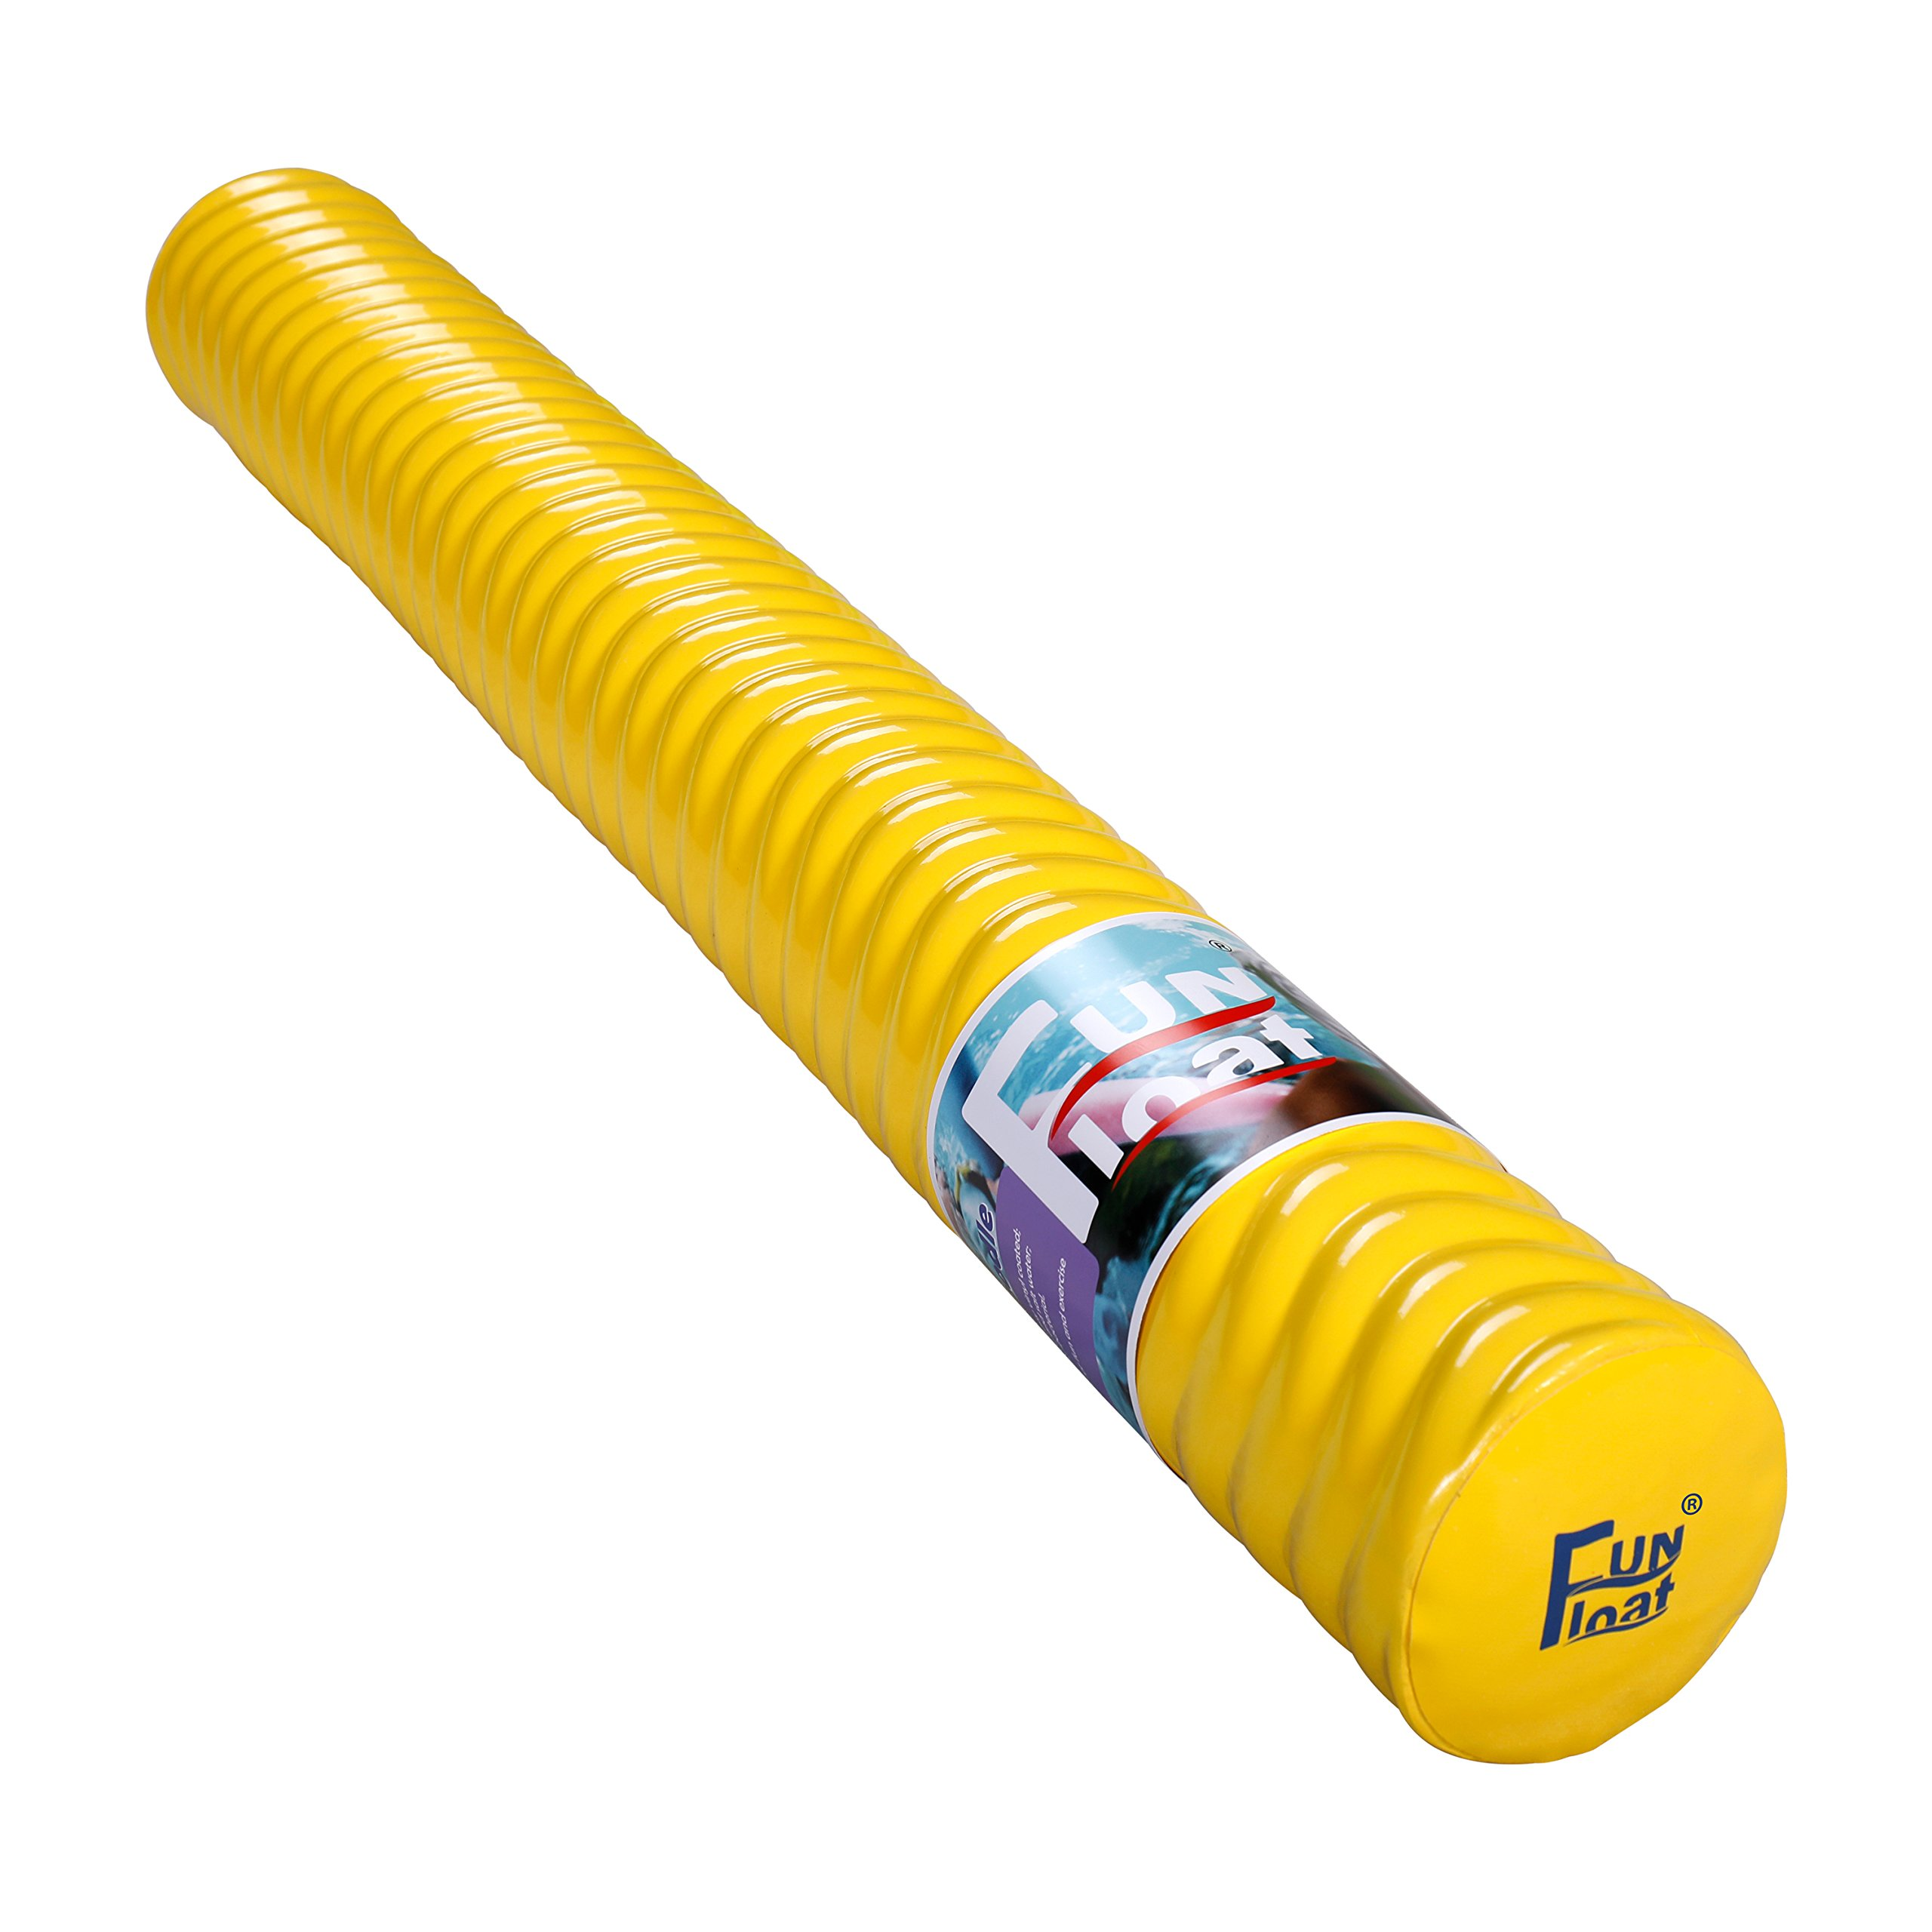 Fun Float Swimming Pool Noodle, Soft Closed-Cell Memory Foam, Vinyl Coated, Unsinkable, Strong Buoyant Power, Fun in Water Lake River Pool as Swimming Floating Toy Equipment Yellow by Fun Float